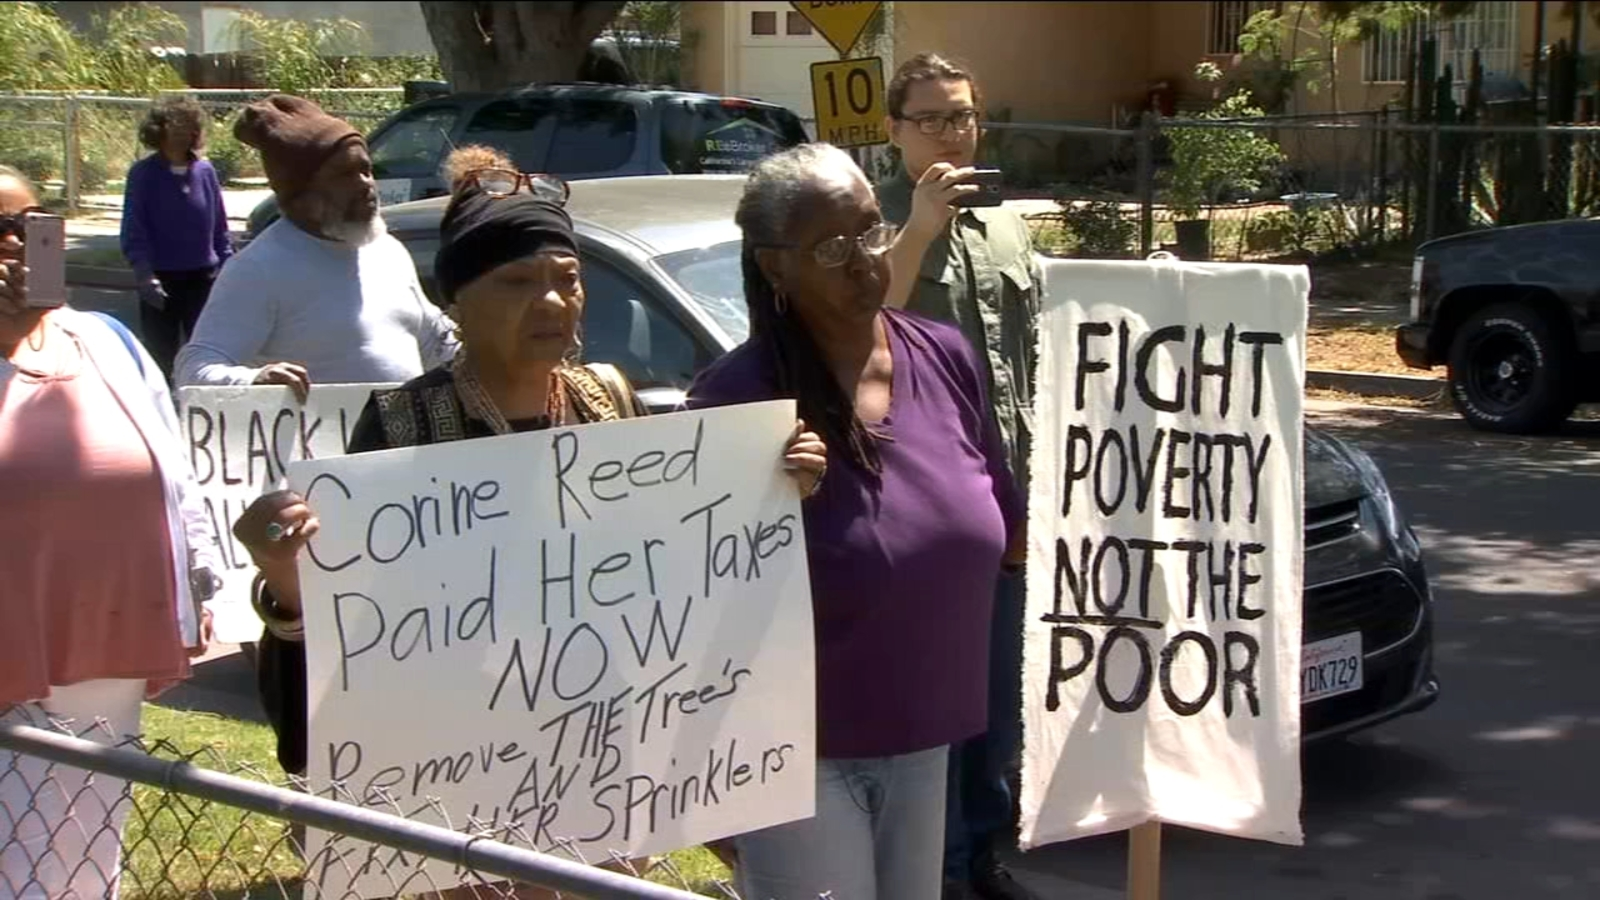 100-year-old Fresno woman locked in battle with city over tree in her yard